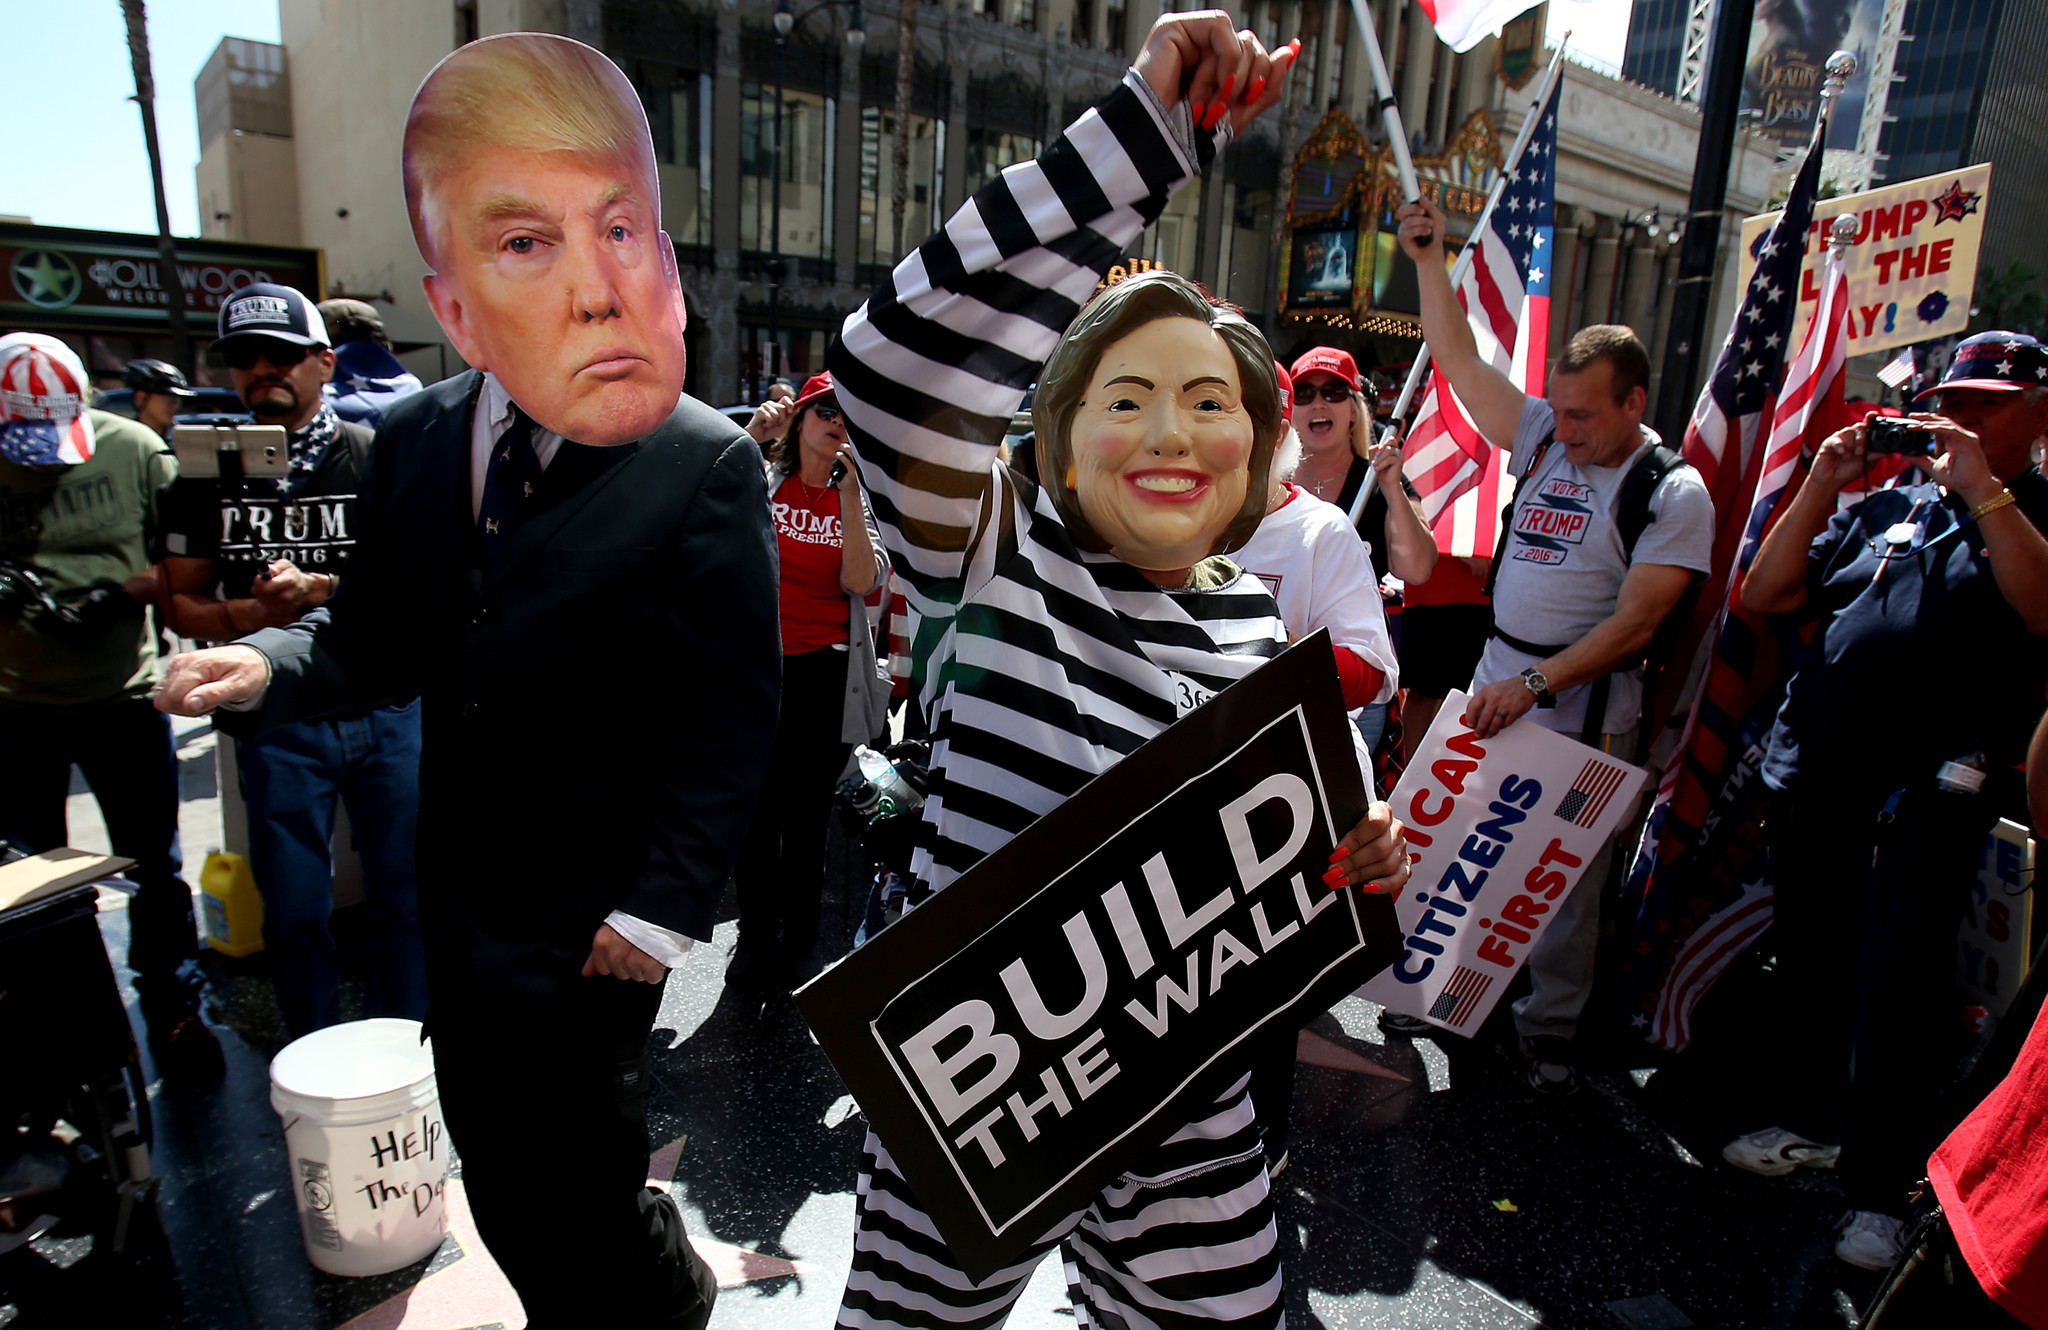 Supporters of President Donald Trump dance on the Walk of Fame during a rally along Hollywood Boulevard on Saturday, March 25. (Luis Sinco / Los Angeles Times)